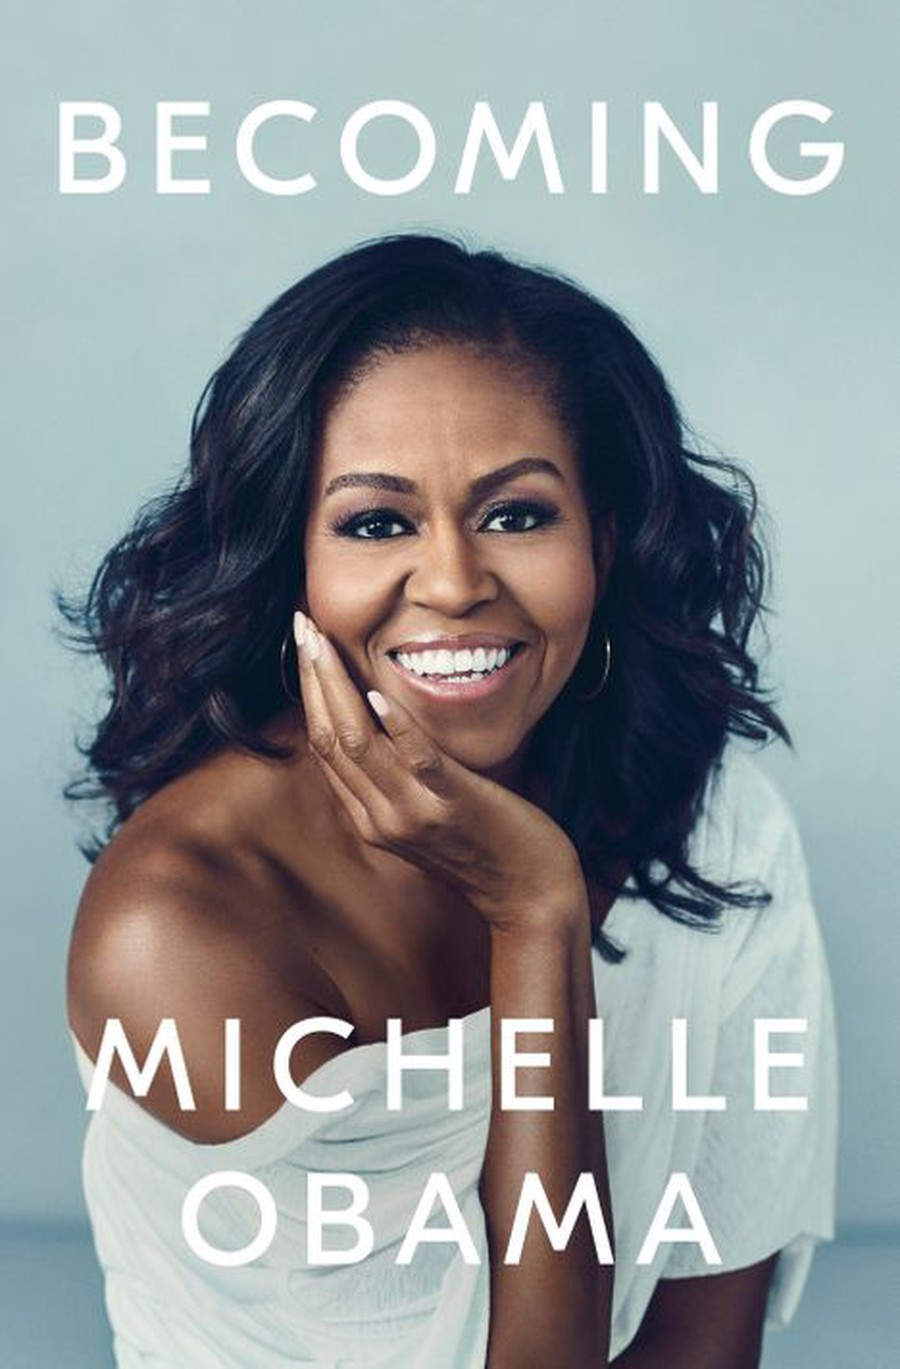 Michelle Obama's memoir, Becoming, will be released Tuesday.